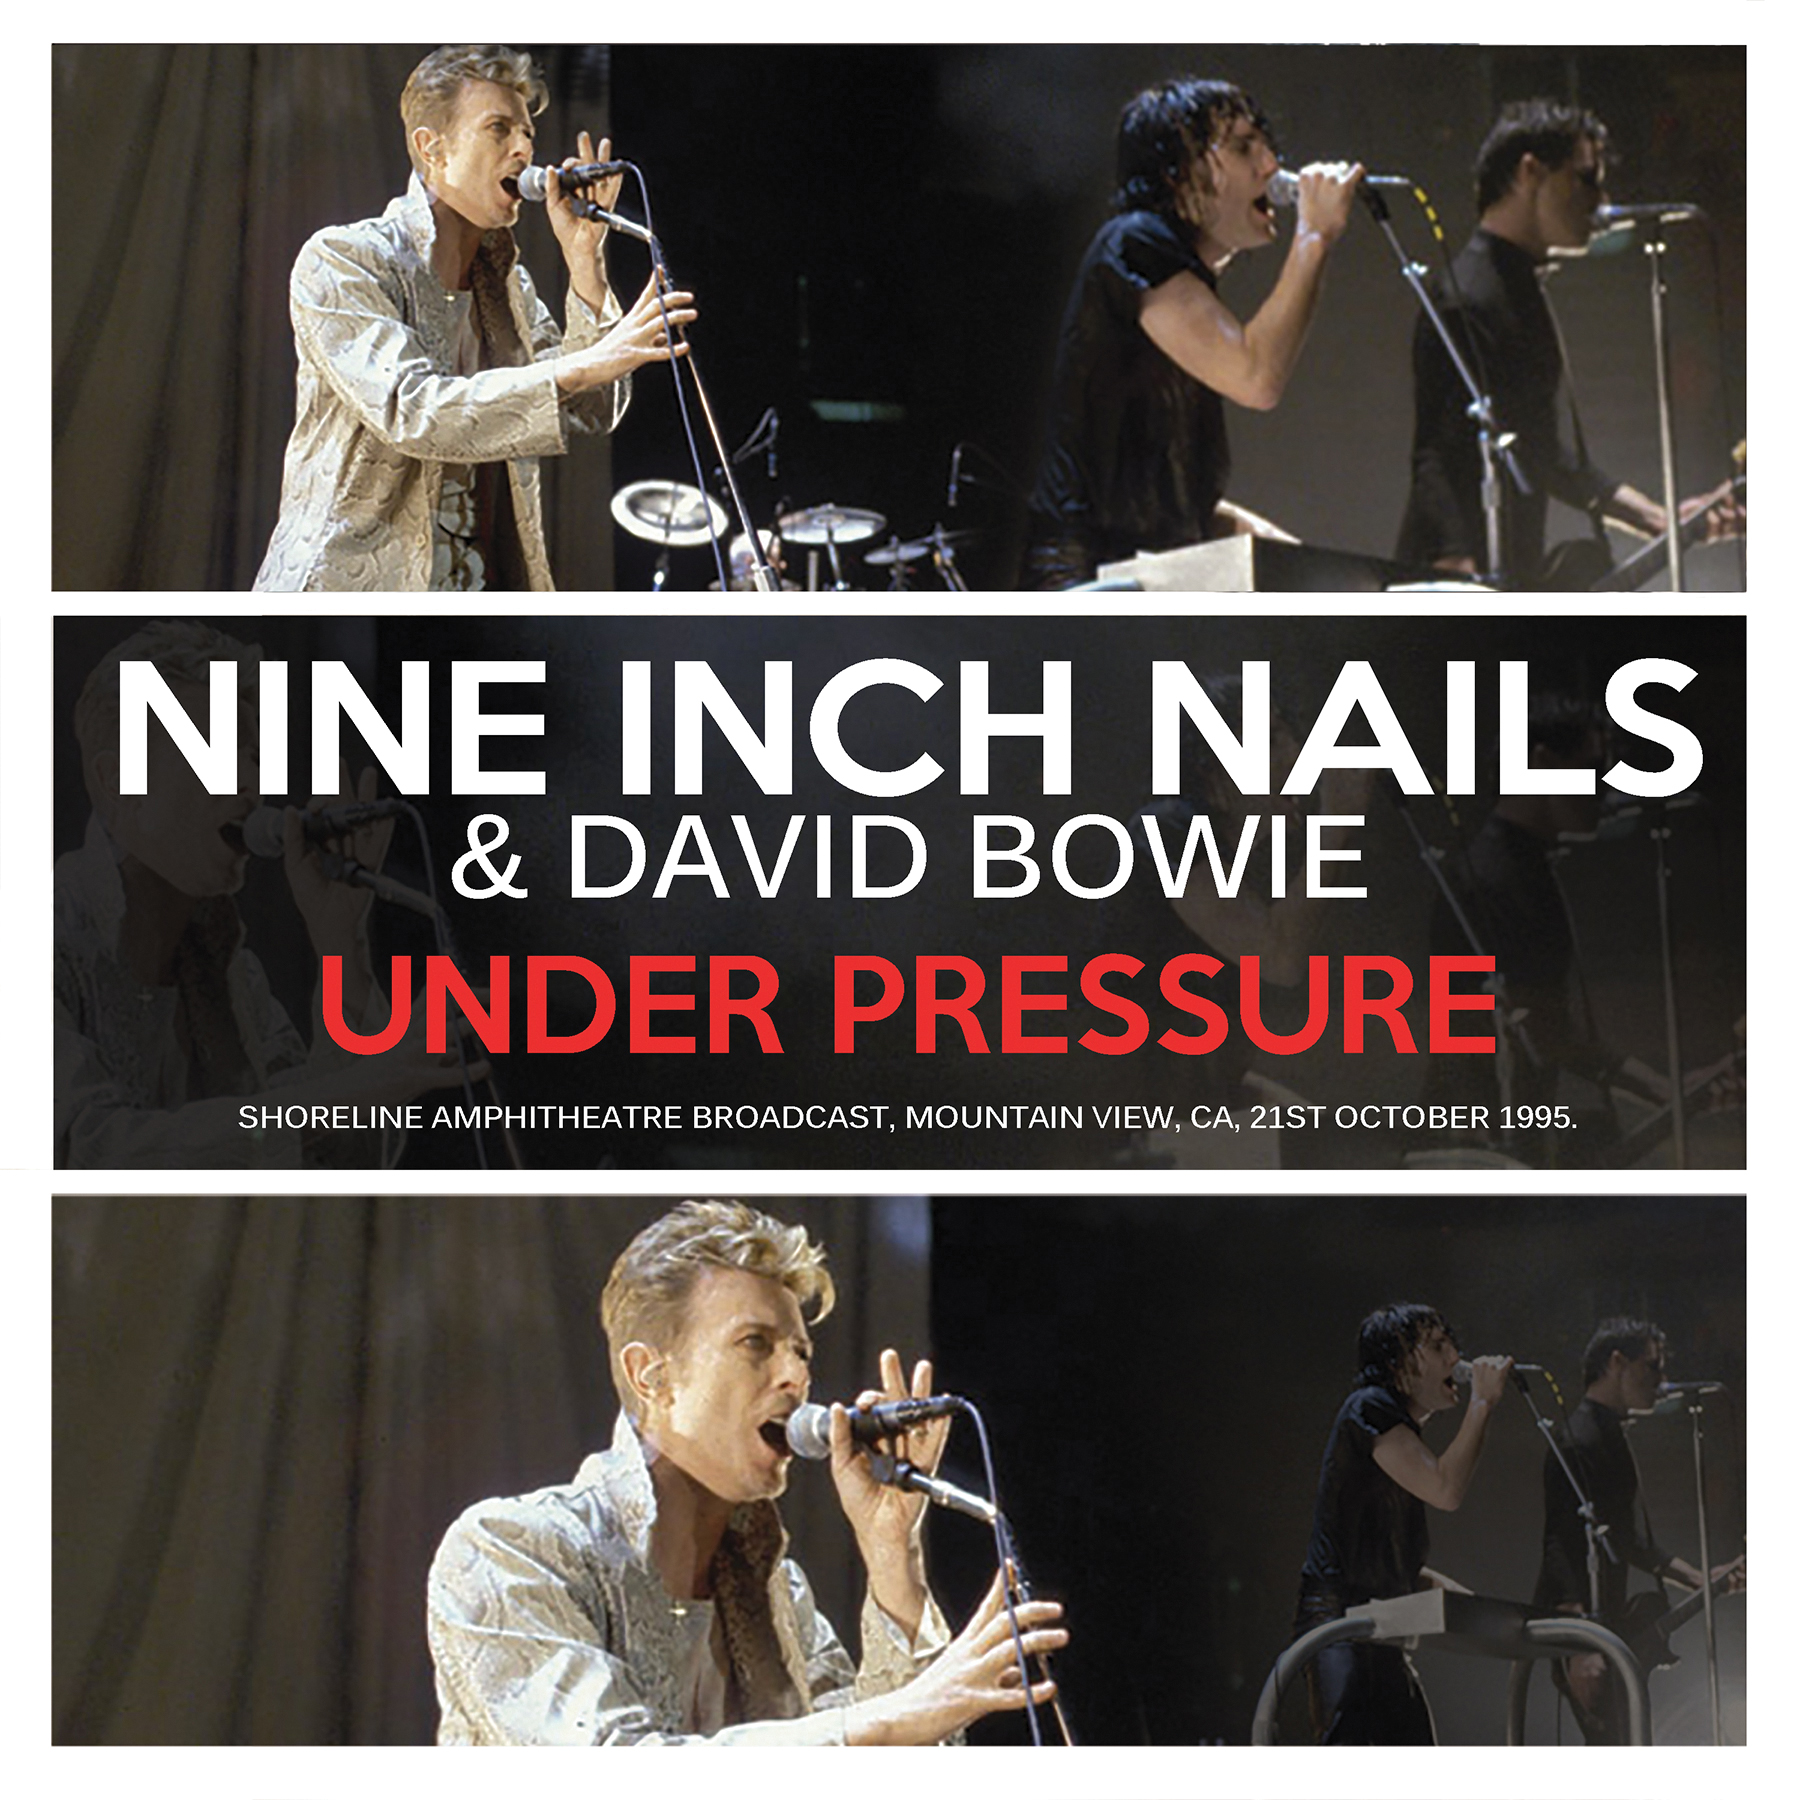 Nine Inch Nails & David Bowie - The Complete Broadcasts - MVD ...